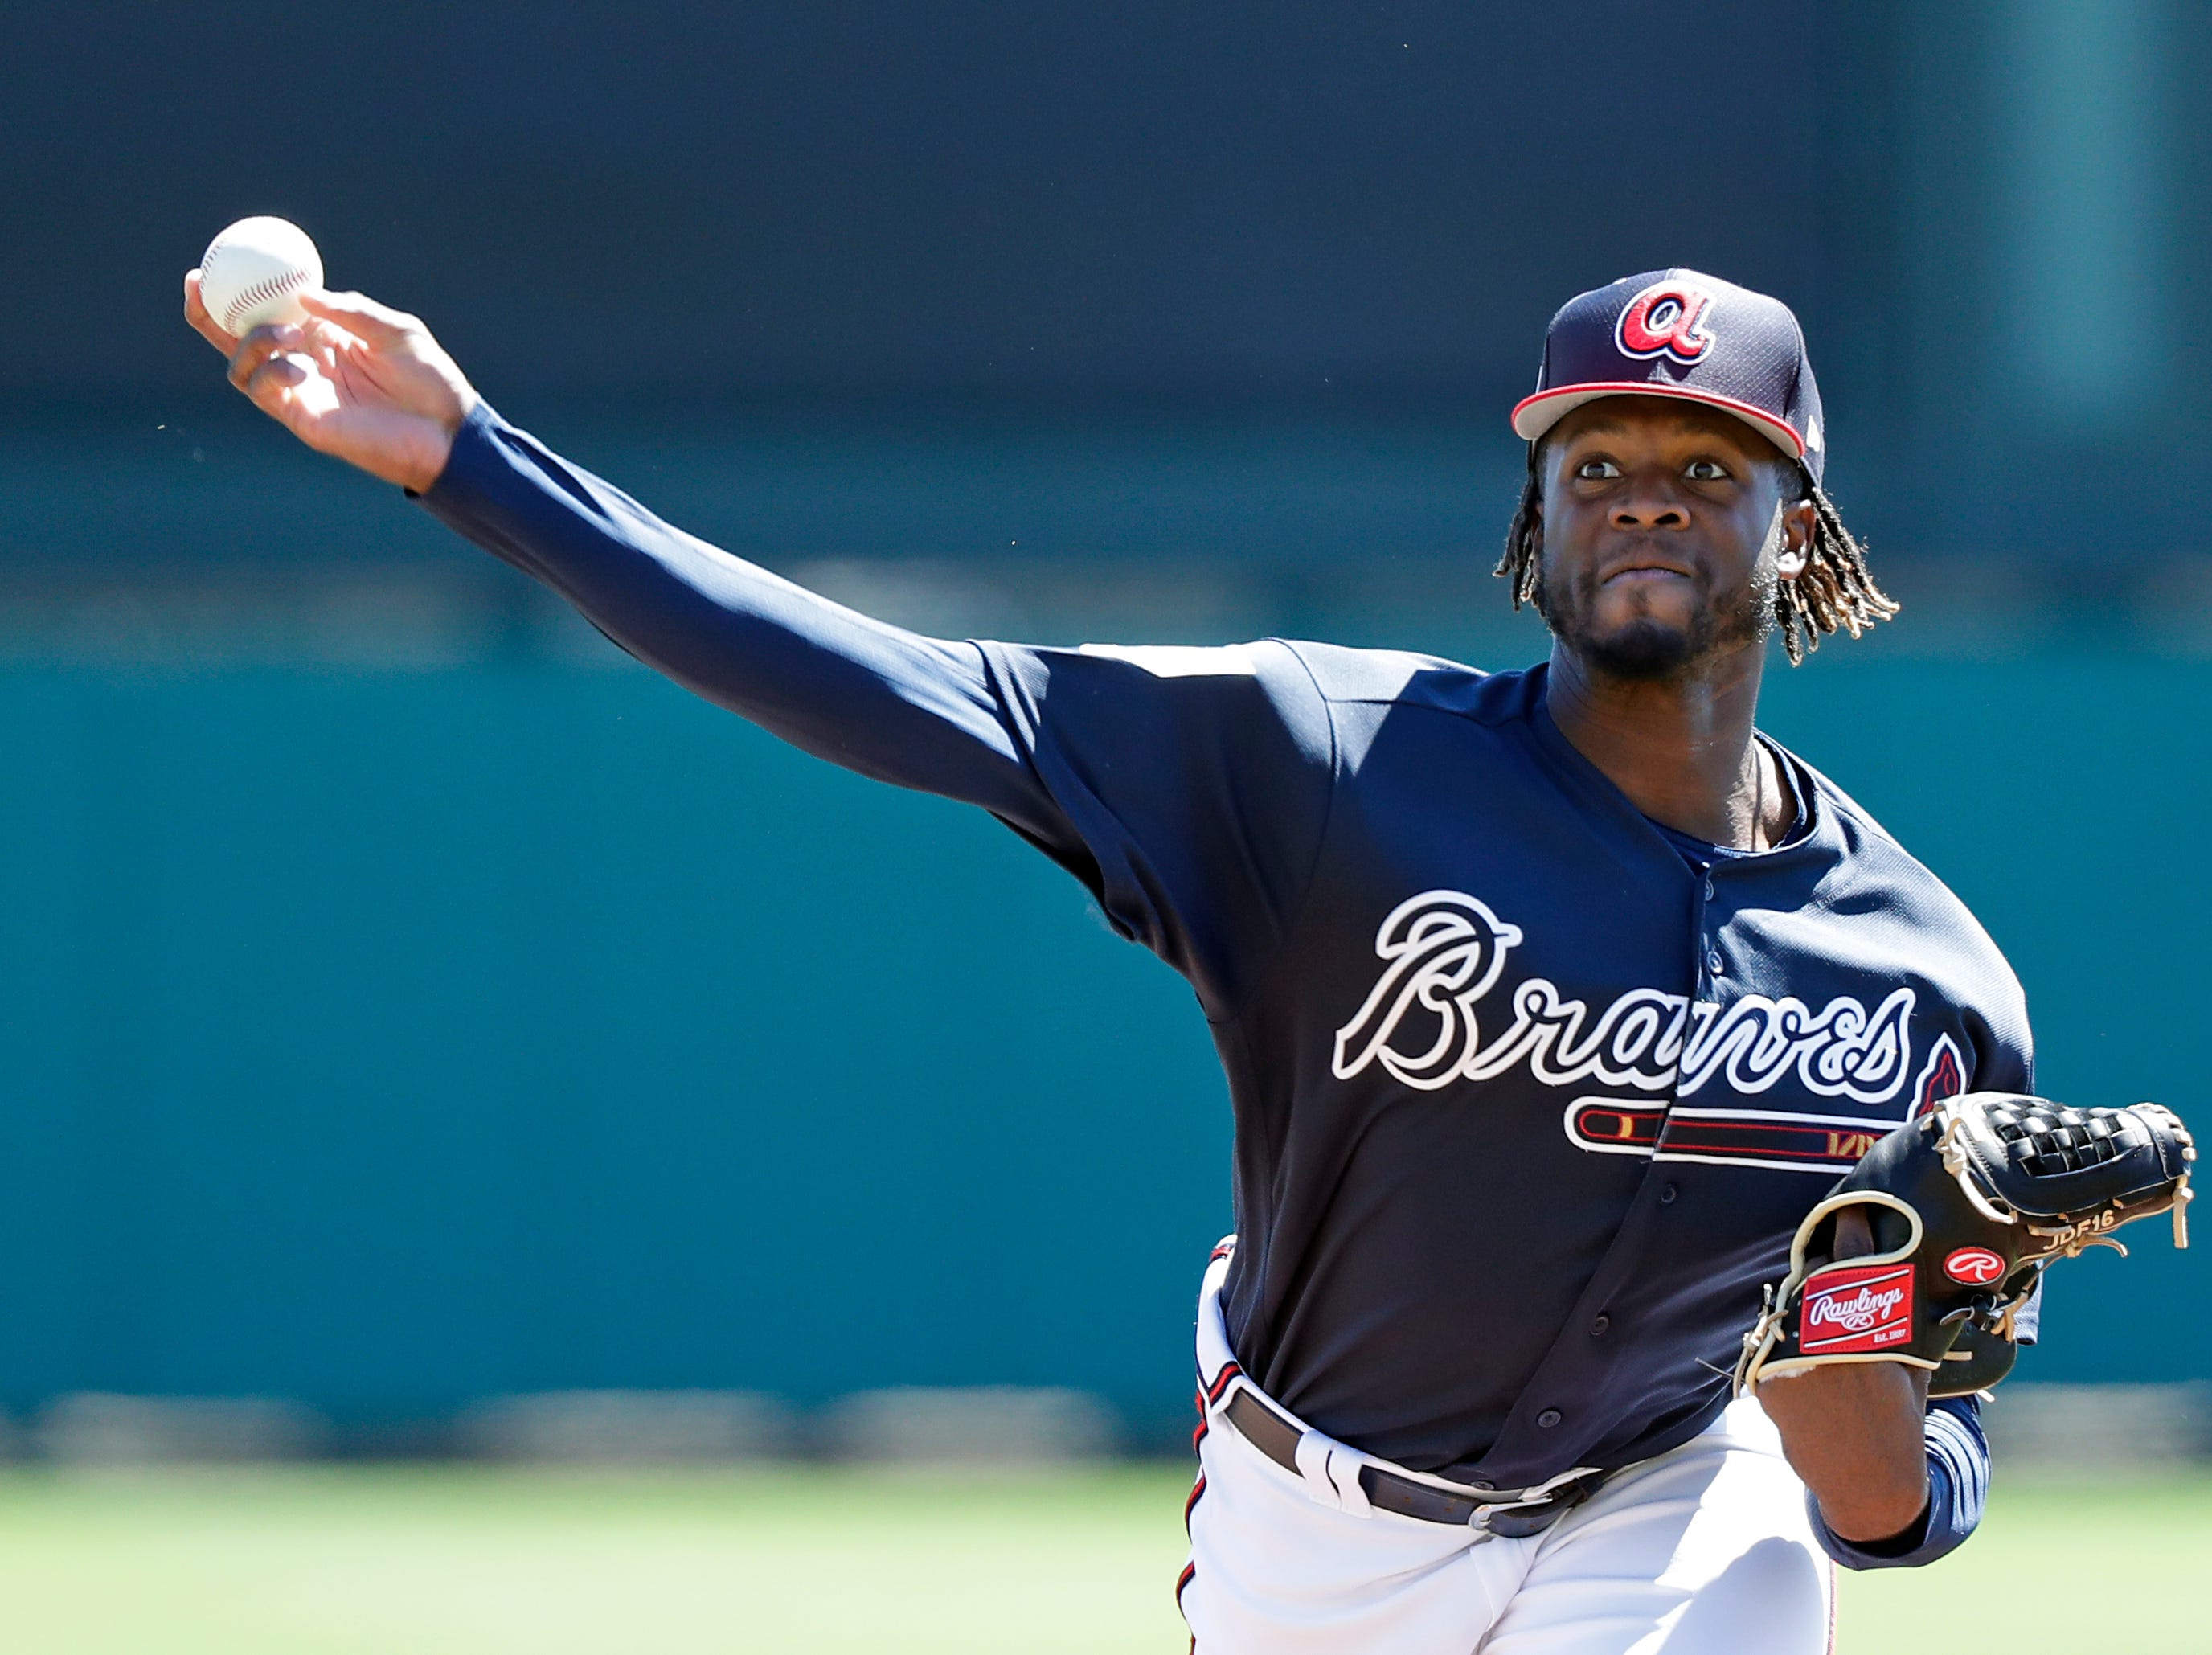 Atlanta Braves' Touki Toussaint pitches against the Detroit Tigers in the first inning of a spring baseball exhibition game, Wednesday, March 6, 2019, in Kissimmee, Fla.